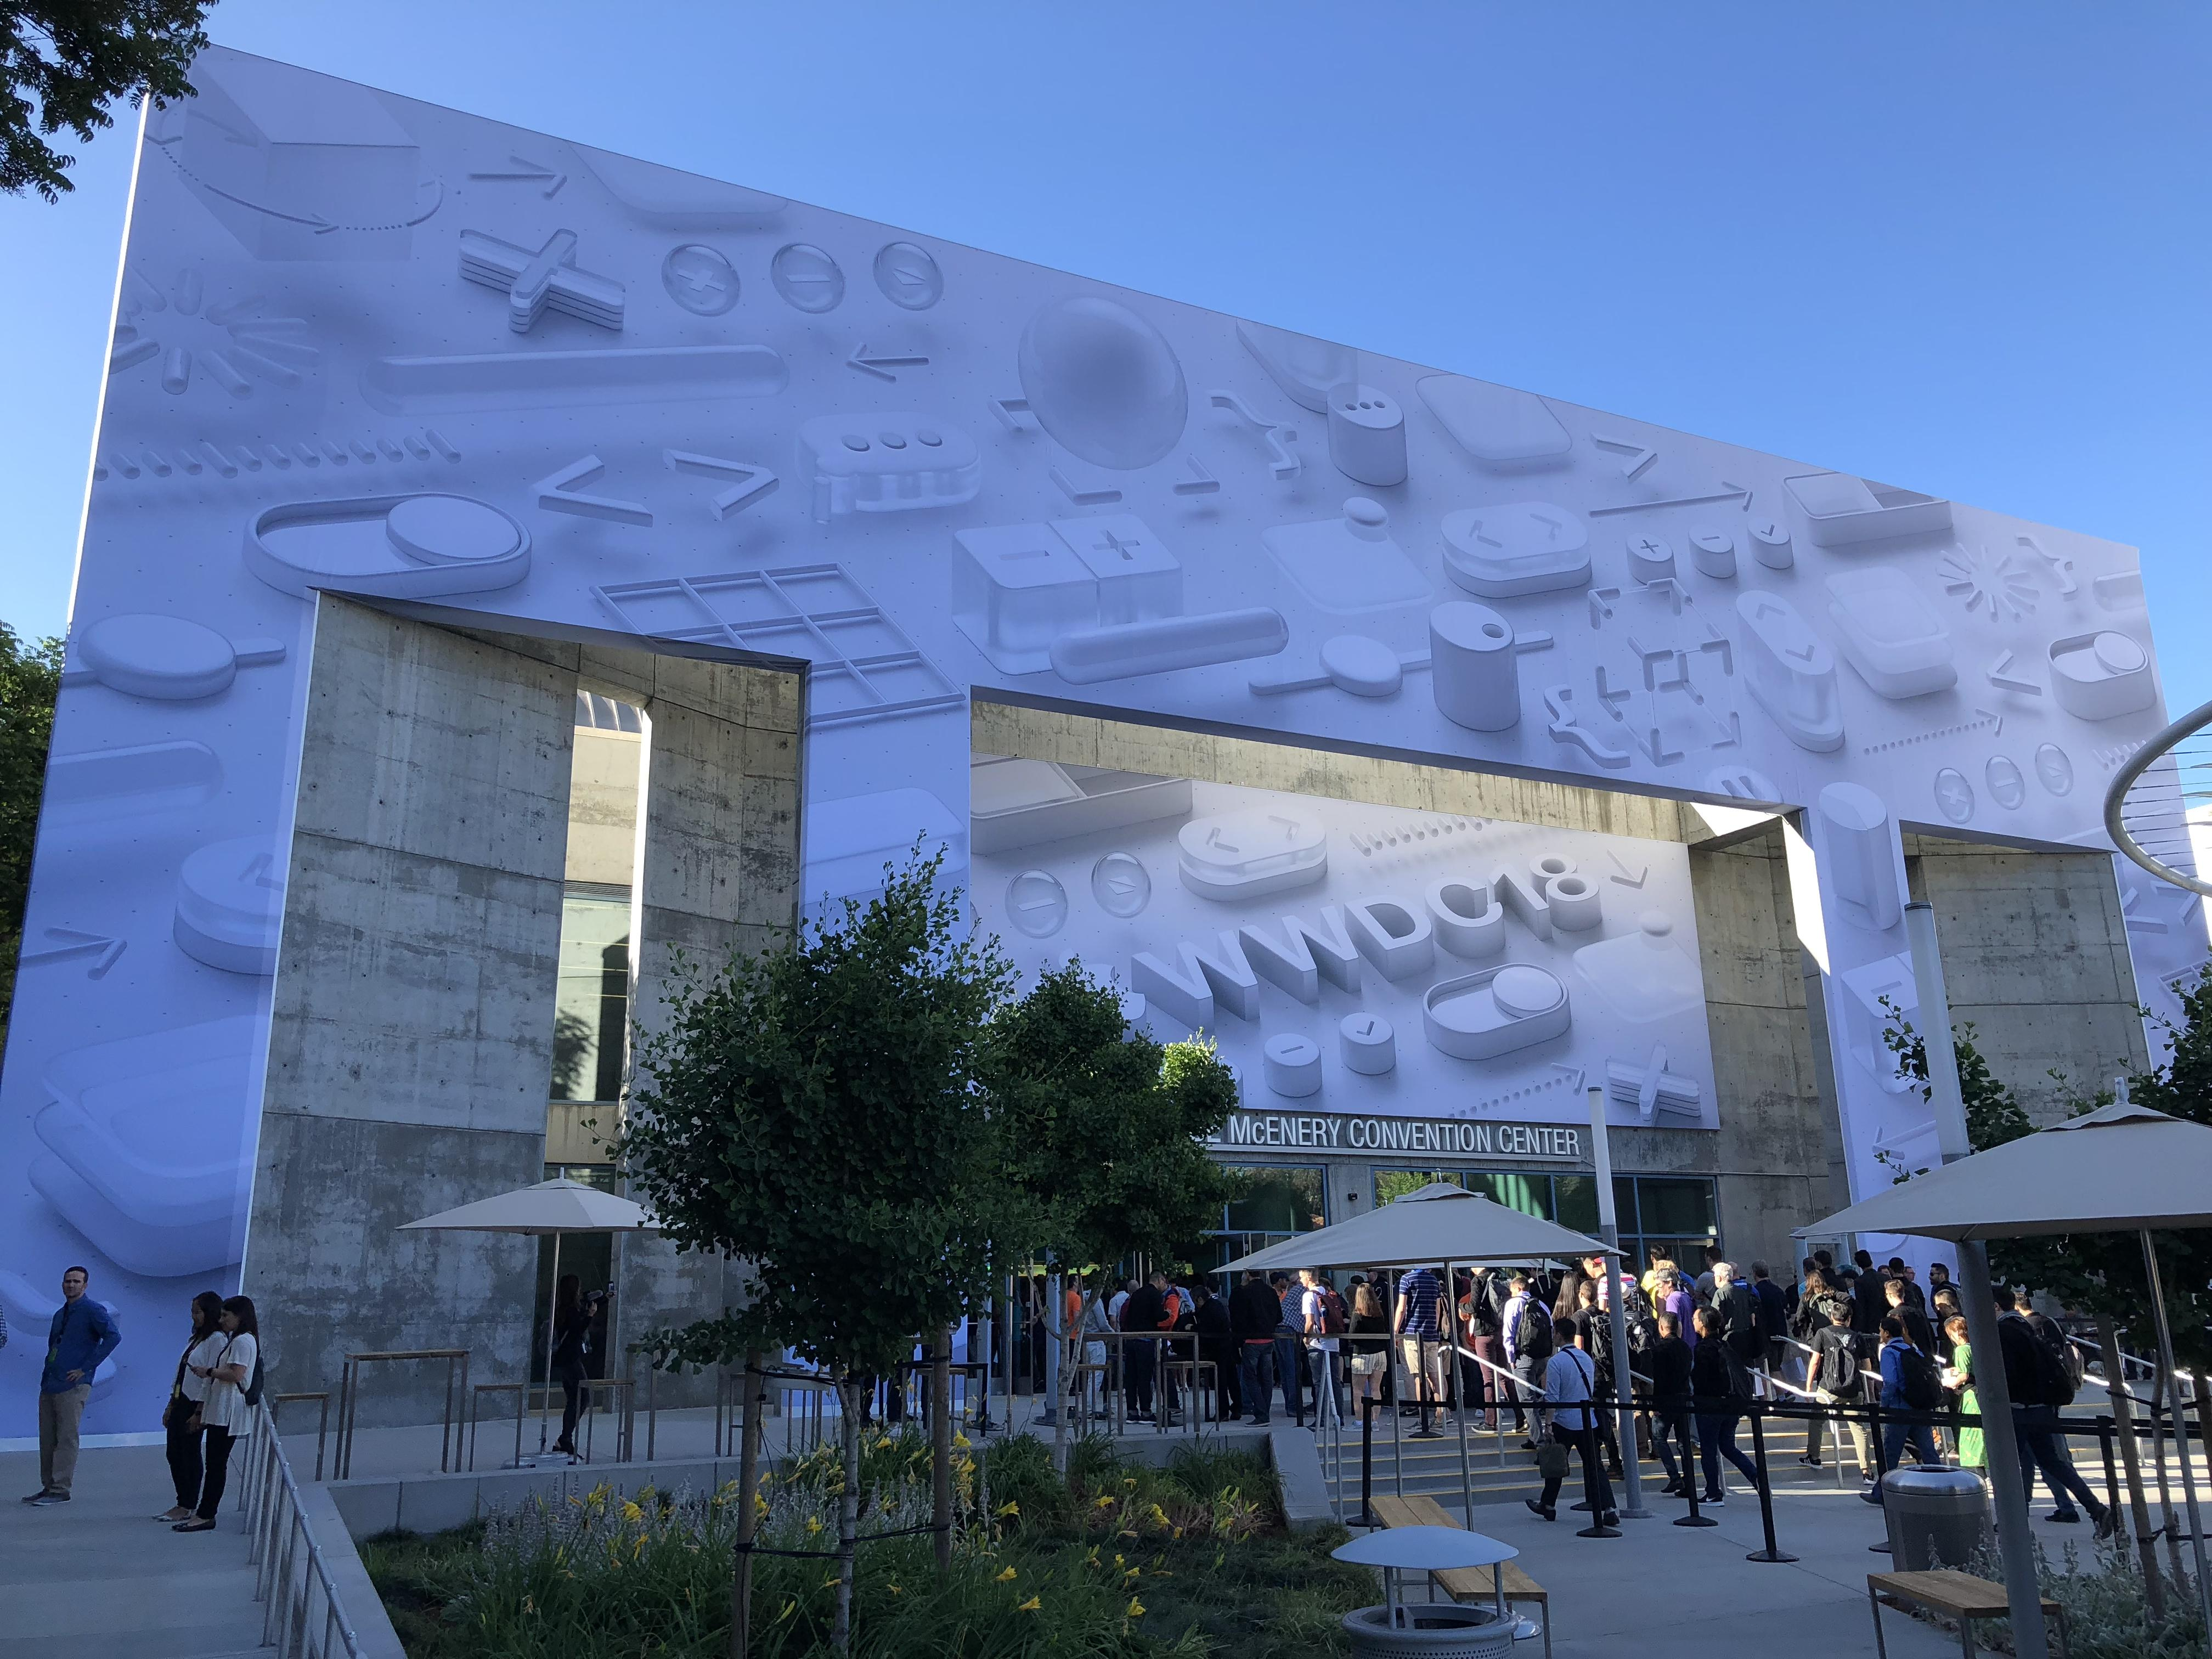 The exterior of the building outside the Apple event at dusk, with the logo superimposed over the outside wall of the structure and a banner hanging down over the main entrance.